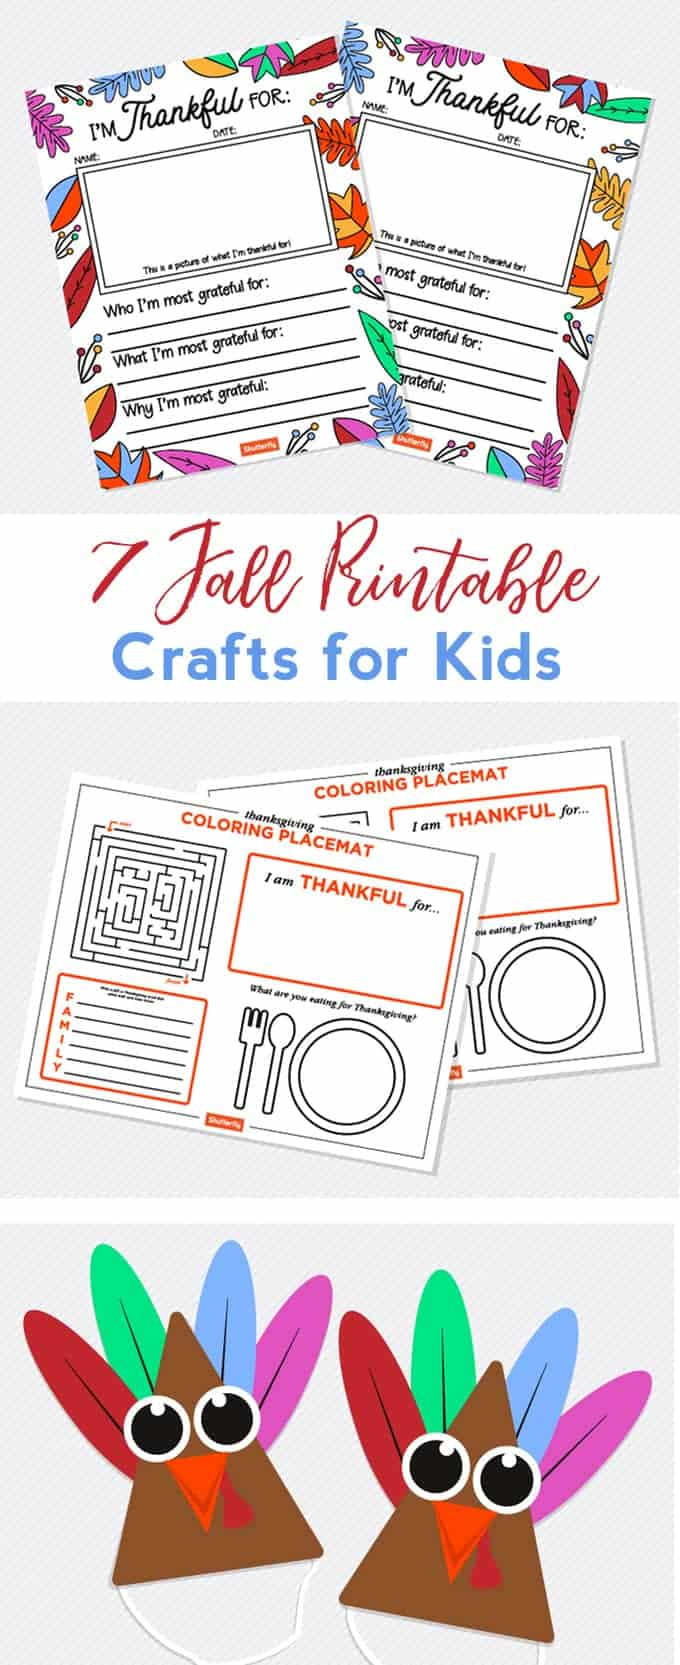 printable crafts for kids